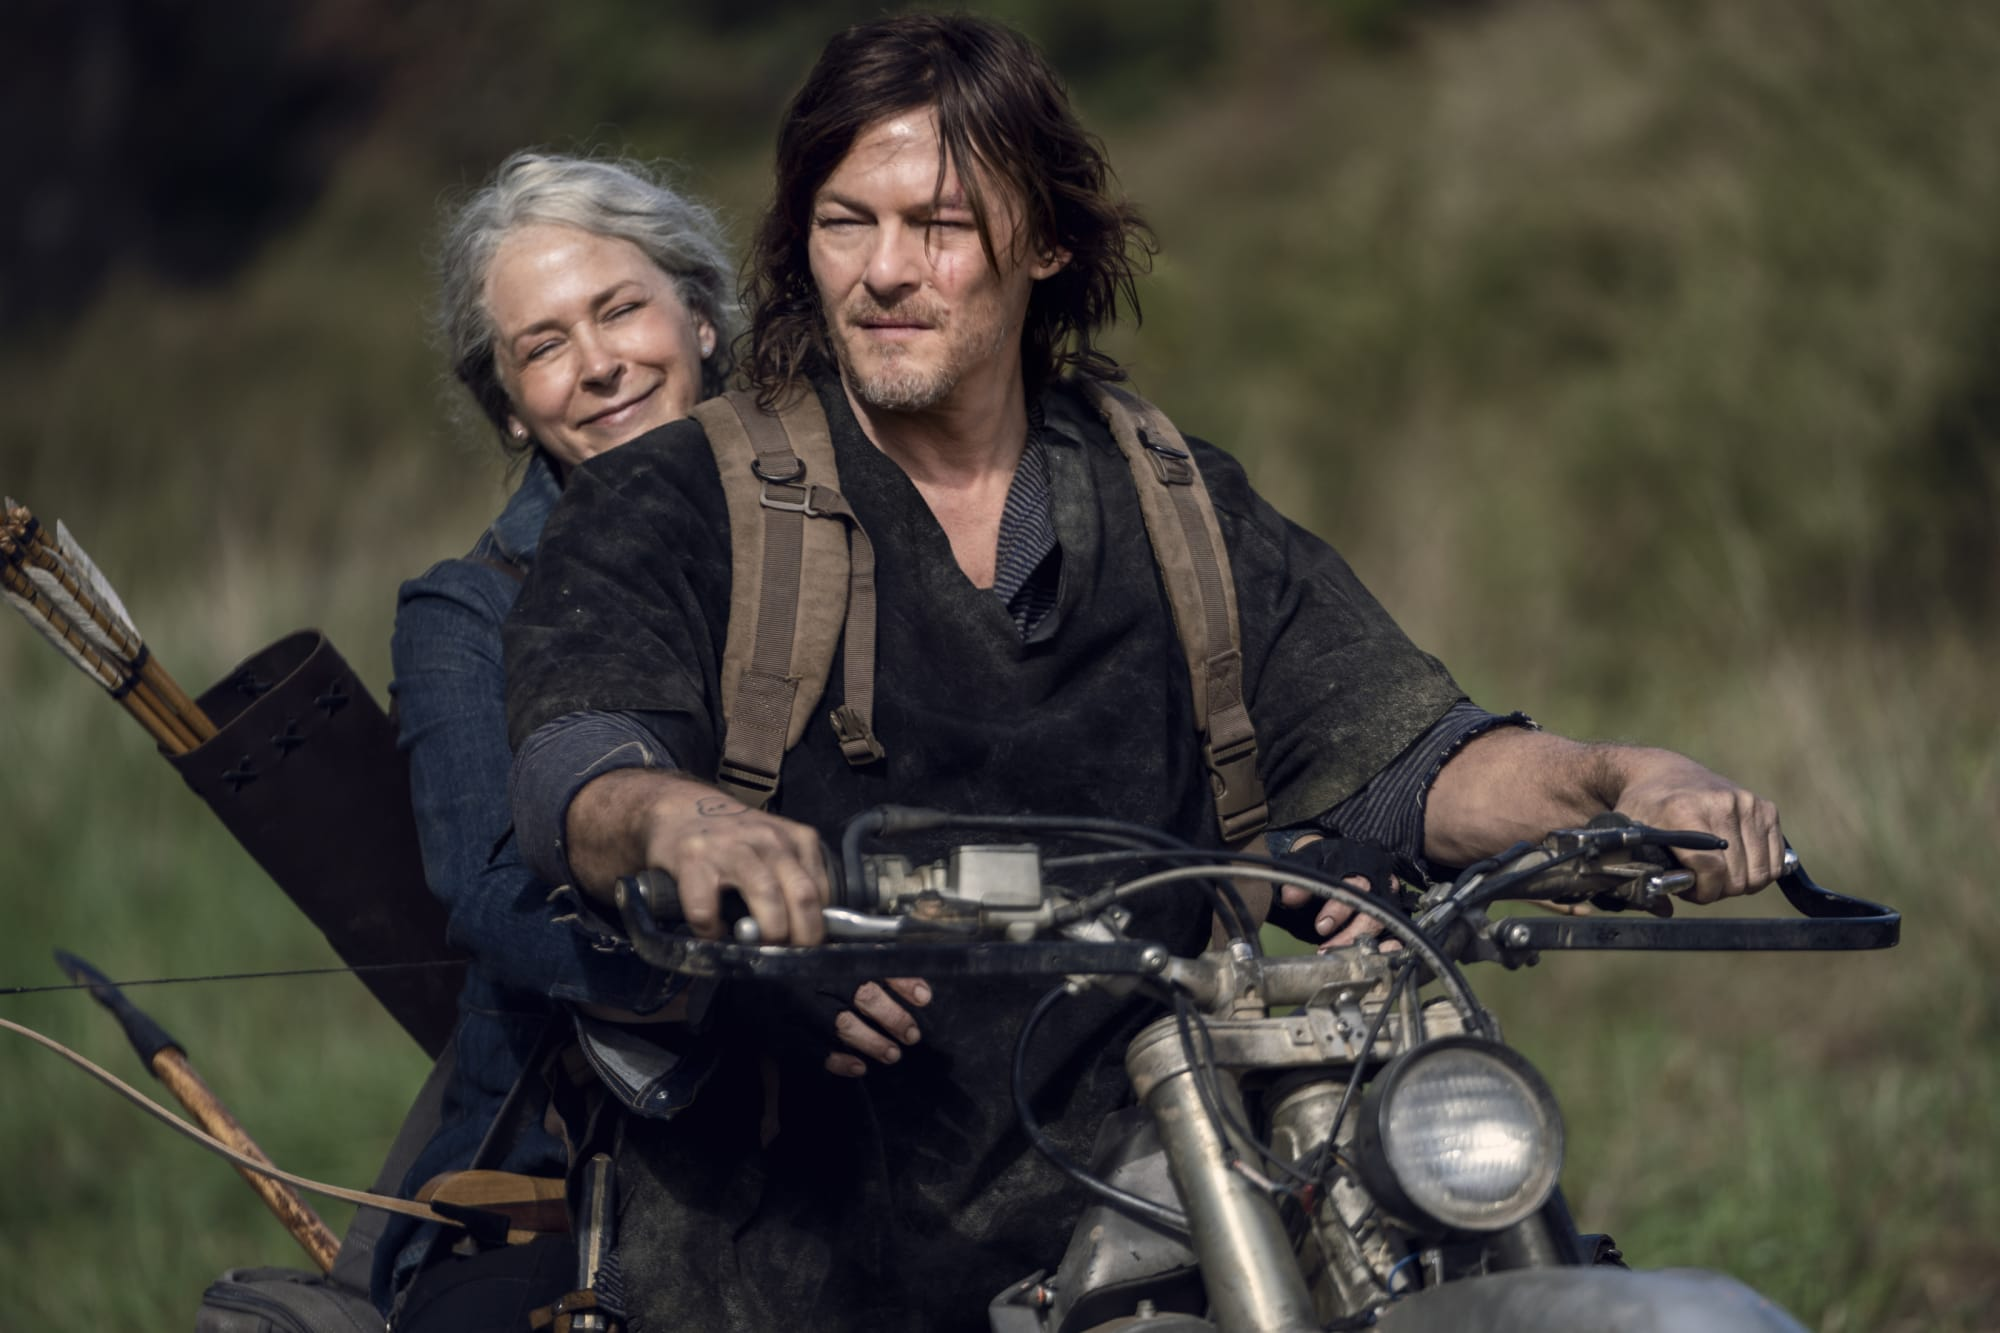 The Walking Dead season 11 release date, cast, trailer, synopsis and more